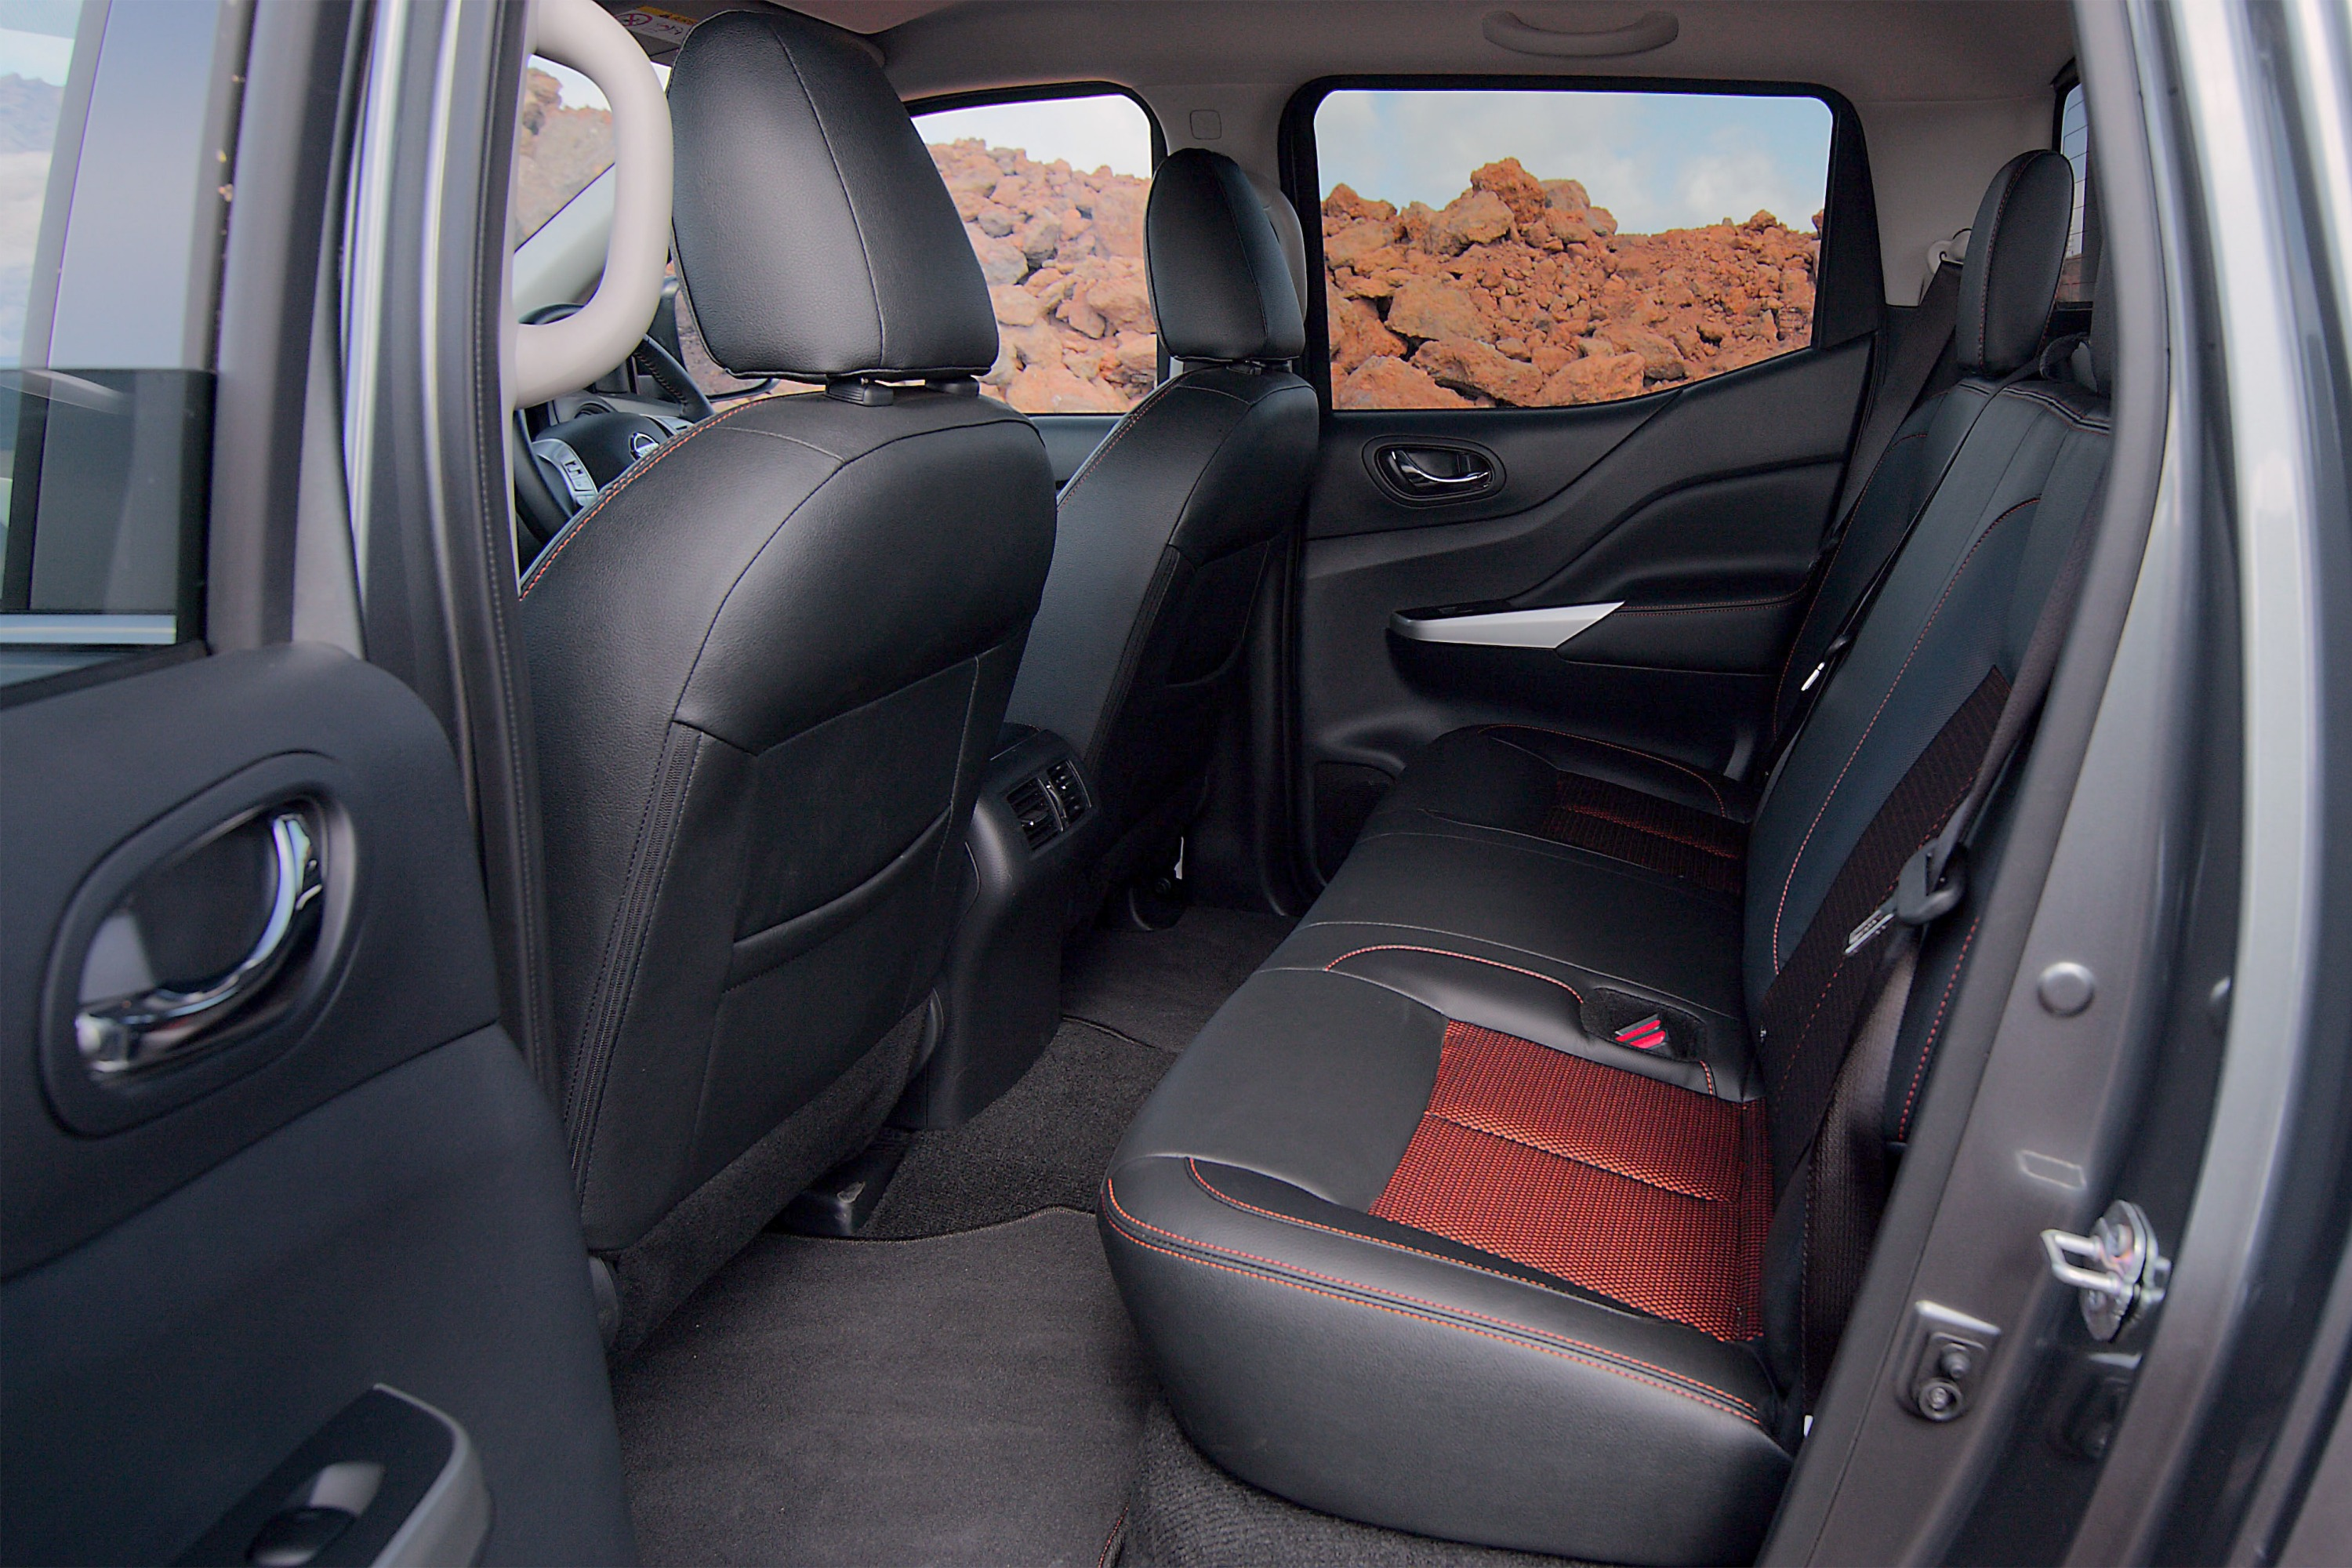 Nissan Navara N-TREK Warrior 5 interior rear seats